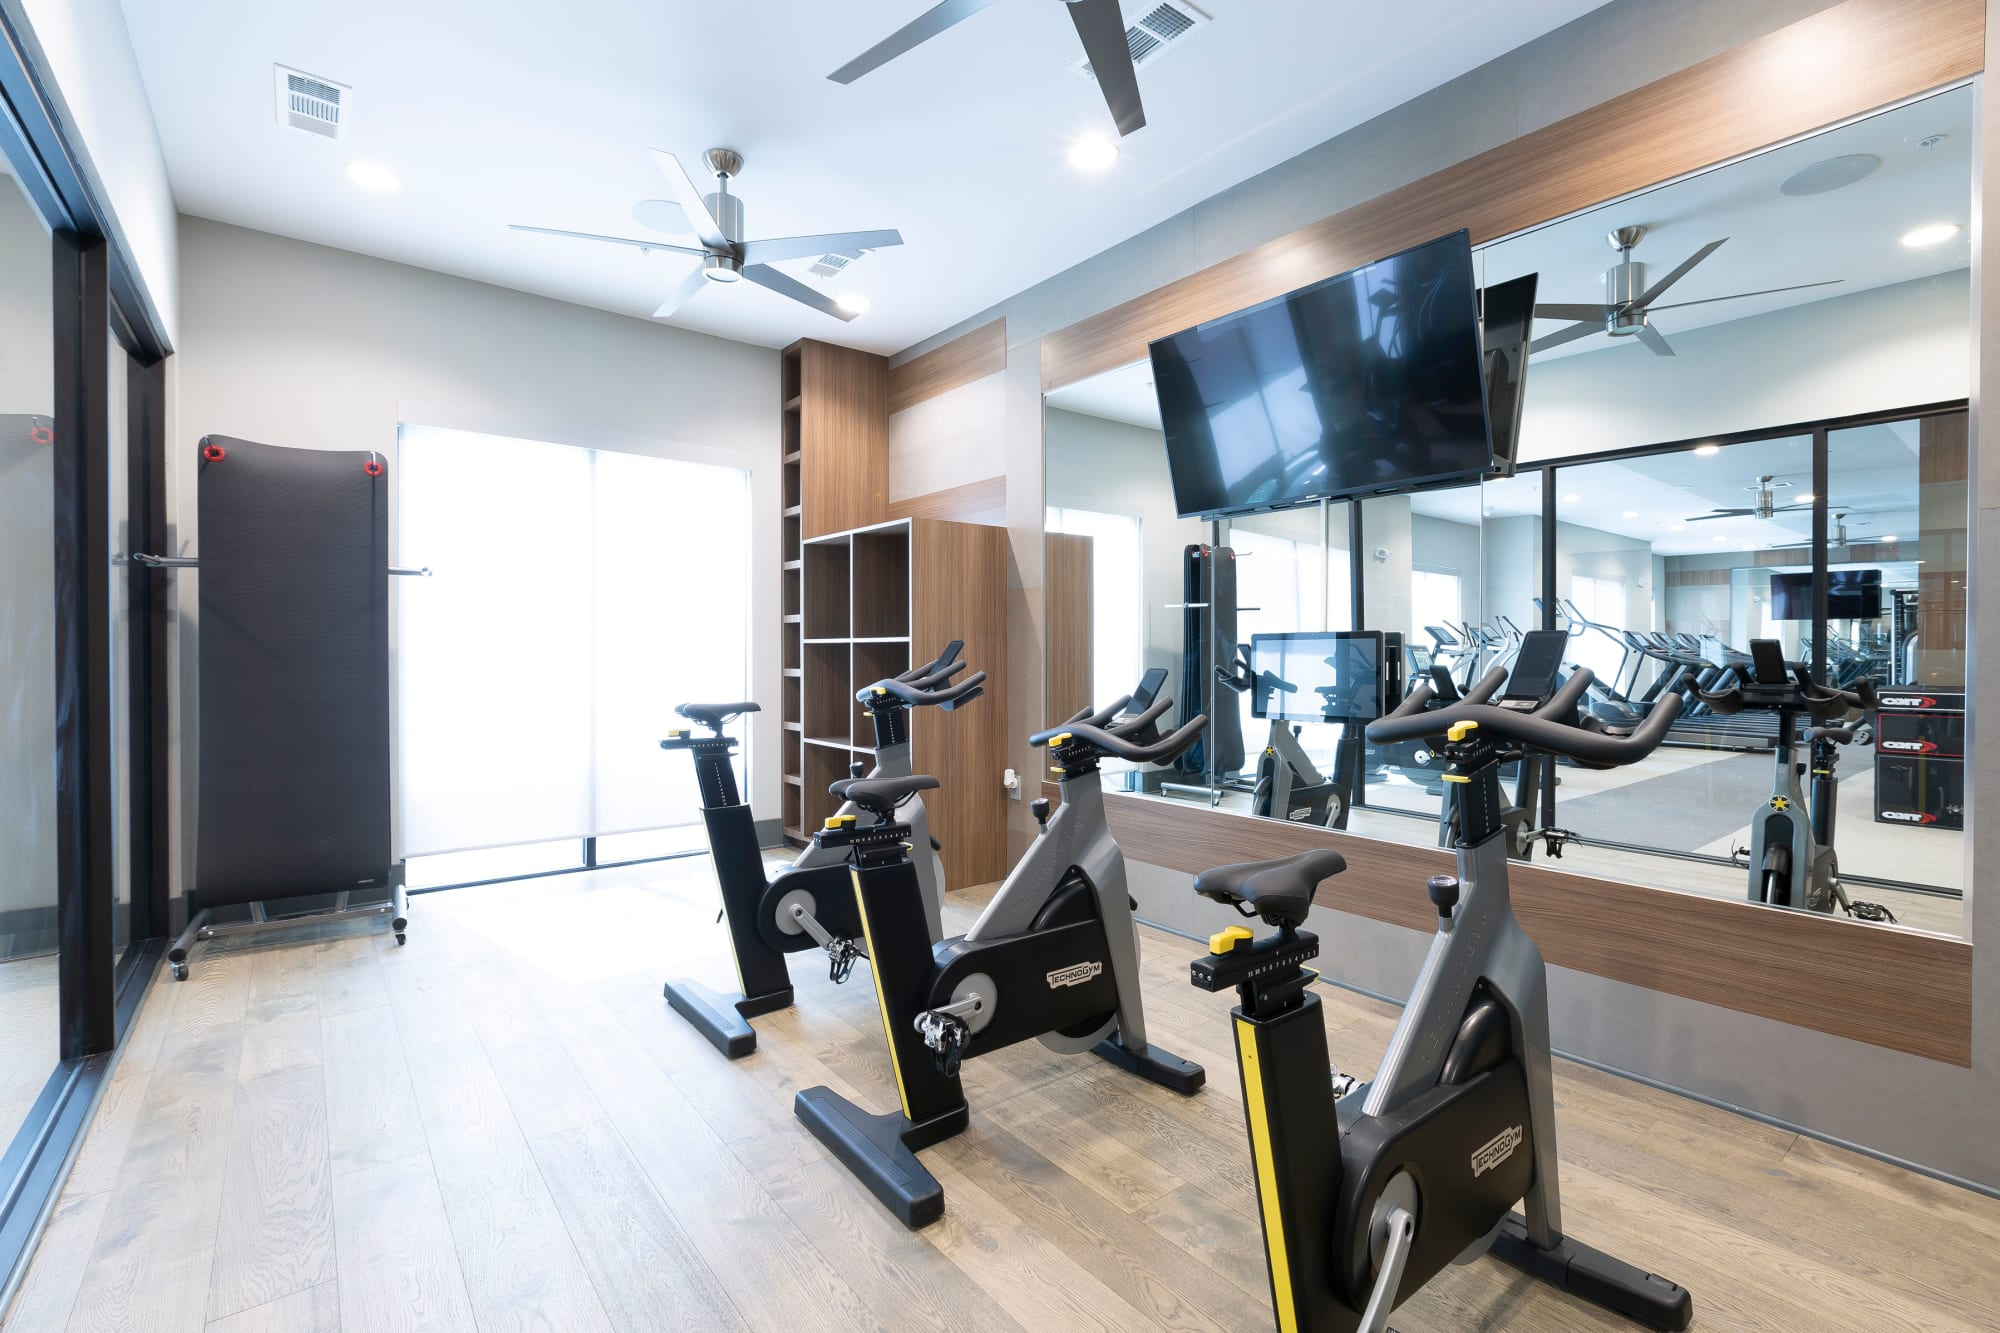 Fitness Center at Alta Trinity Green in Dallas, Texas